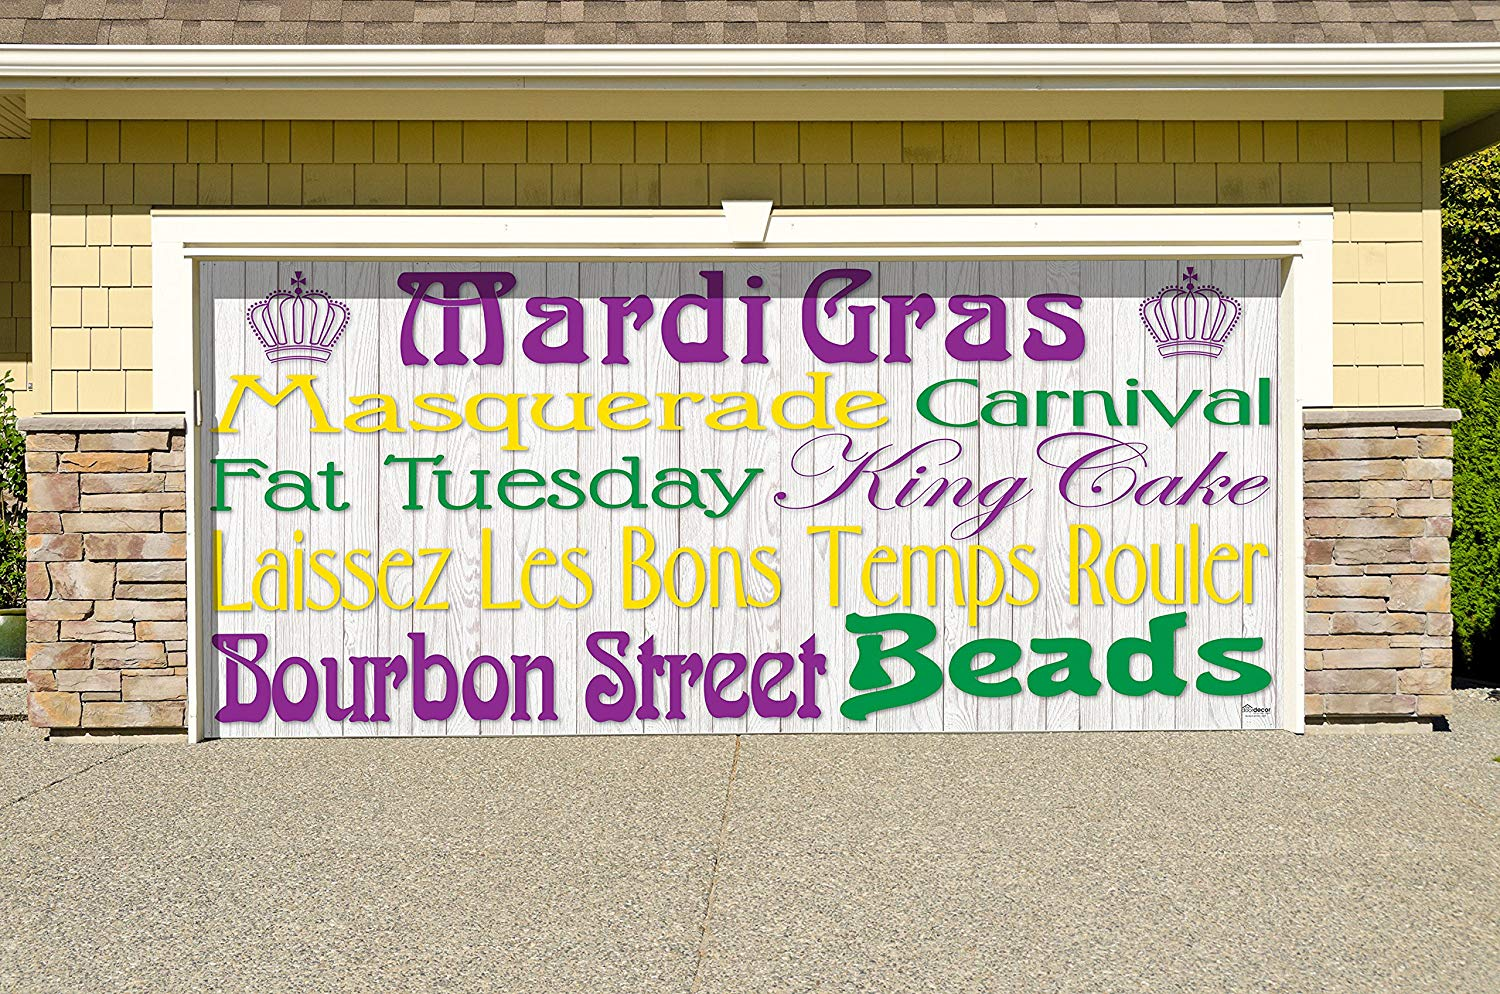 Victory Corps Outdoor Mardi Gras Decorations Garage Door Banner Cover Mural Décoration 7'x16' - Mardi Gras Words -The Original Mardi Gras Supplies Holiday Garage Door Banner Decor